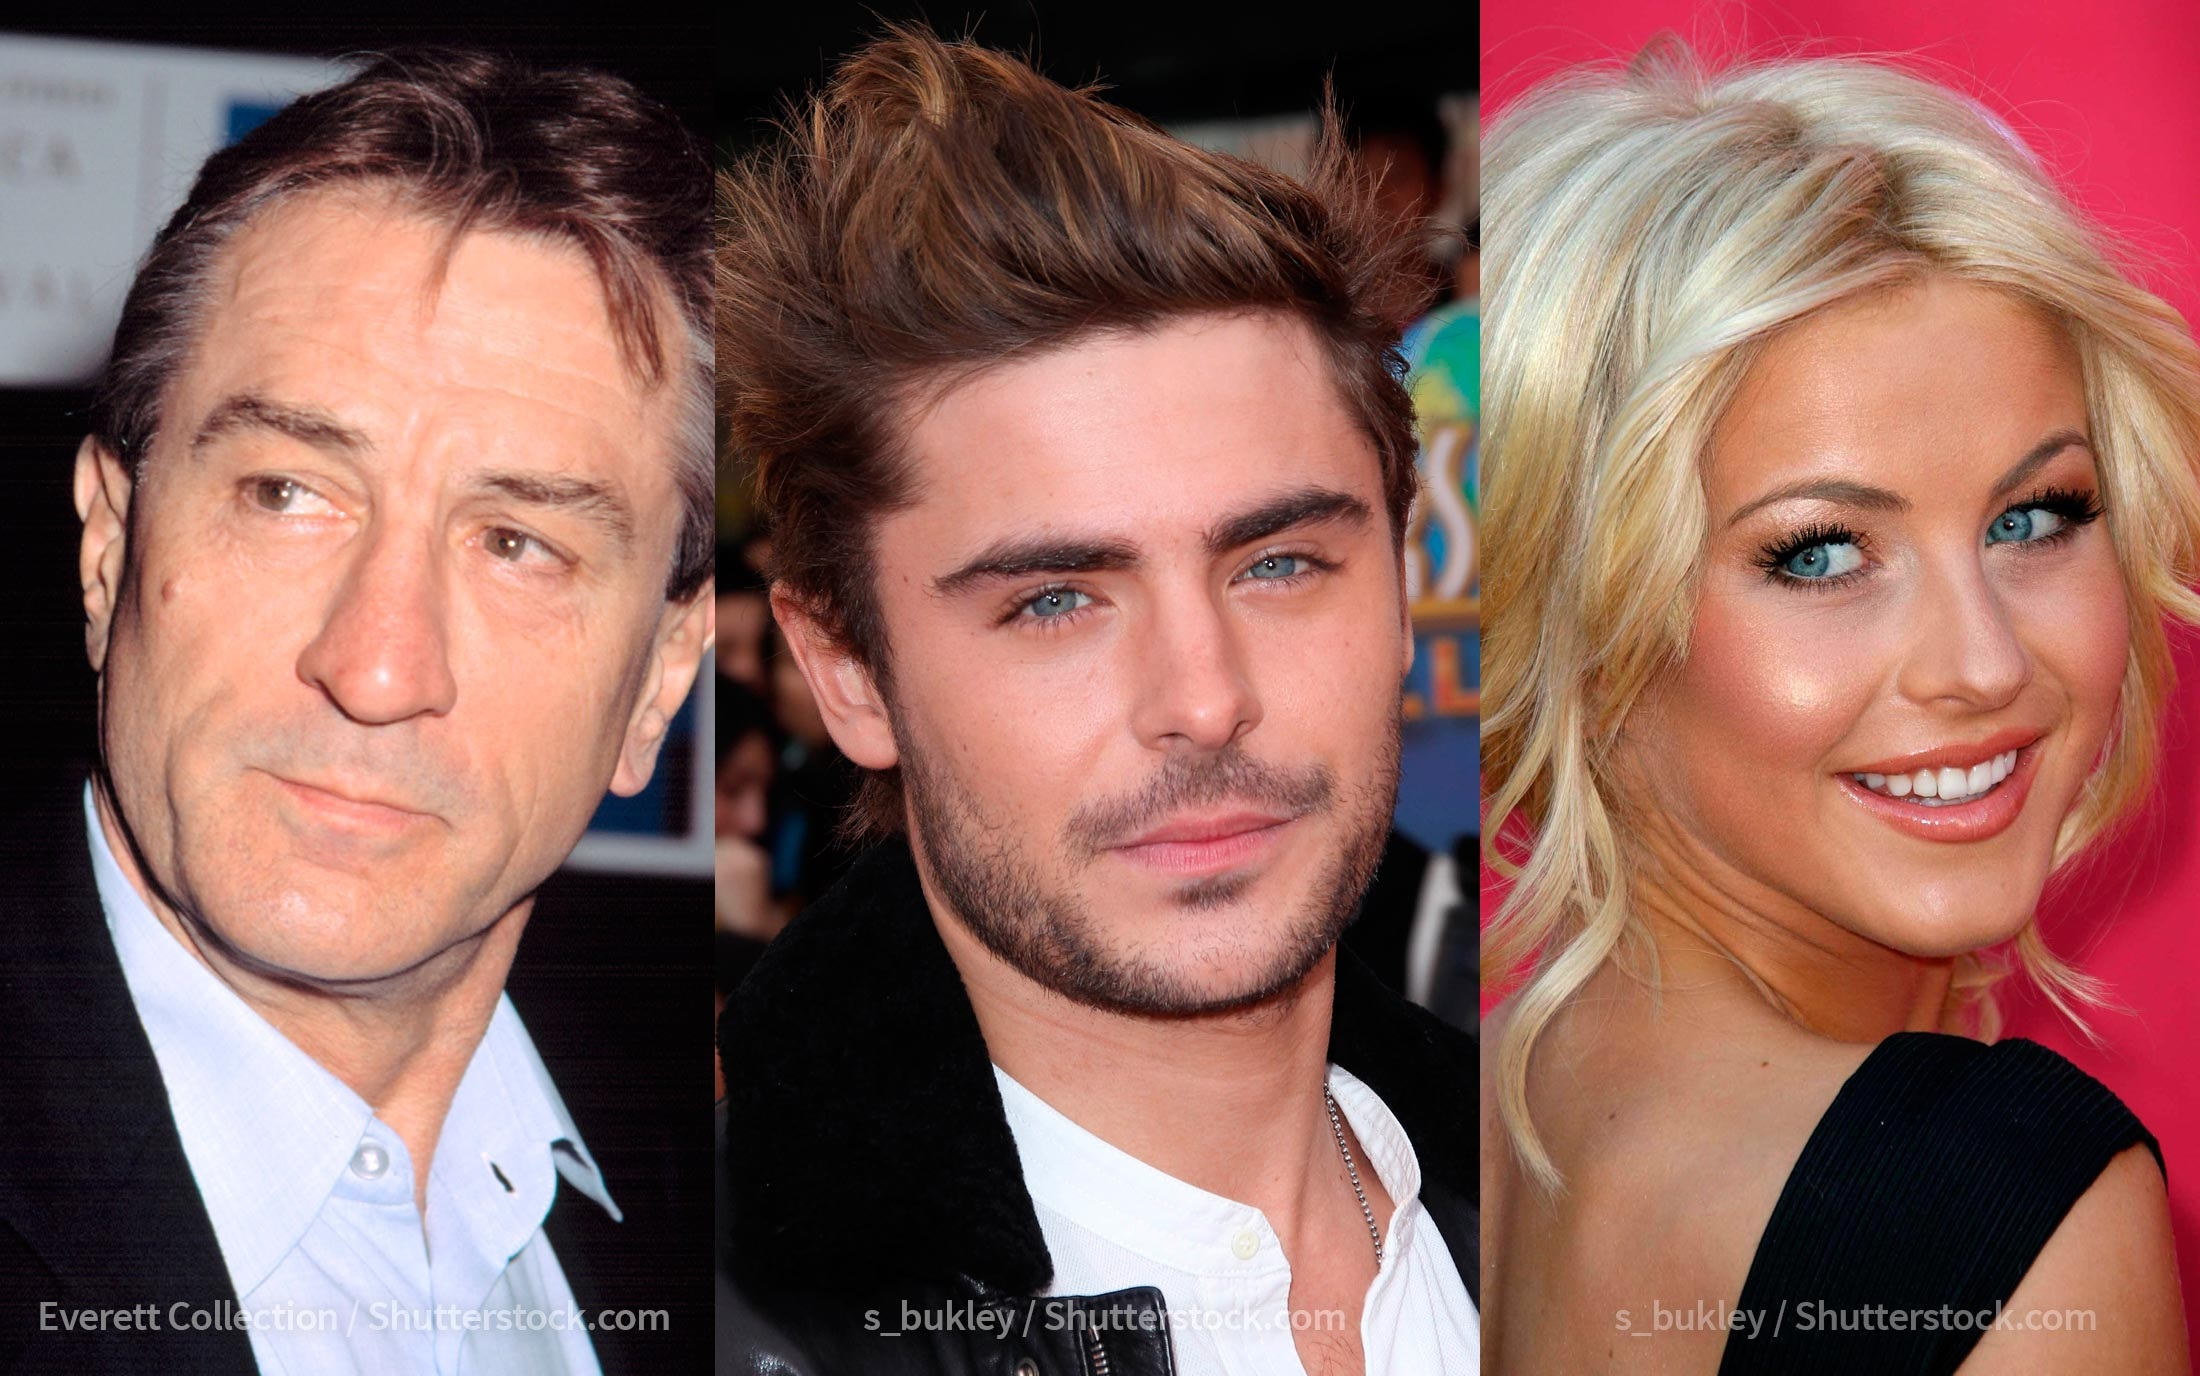 Dirty Grandpa Cast, Zac Efron net worth, Robert De Niro net worth, Julianne Hough net worth